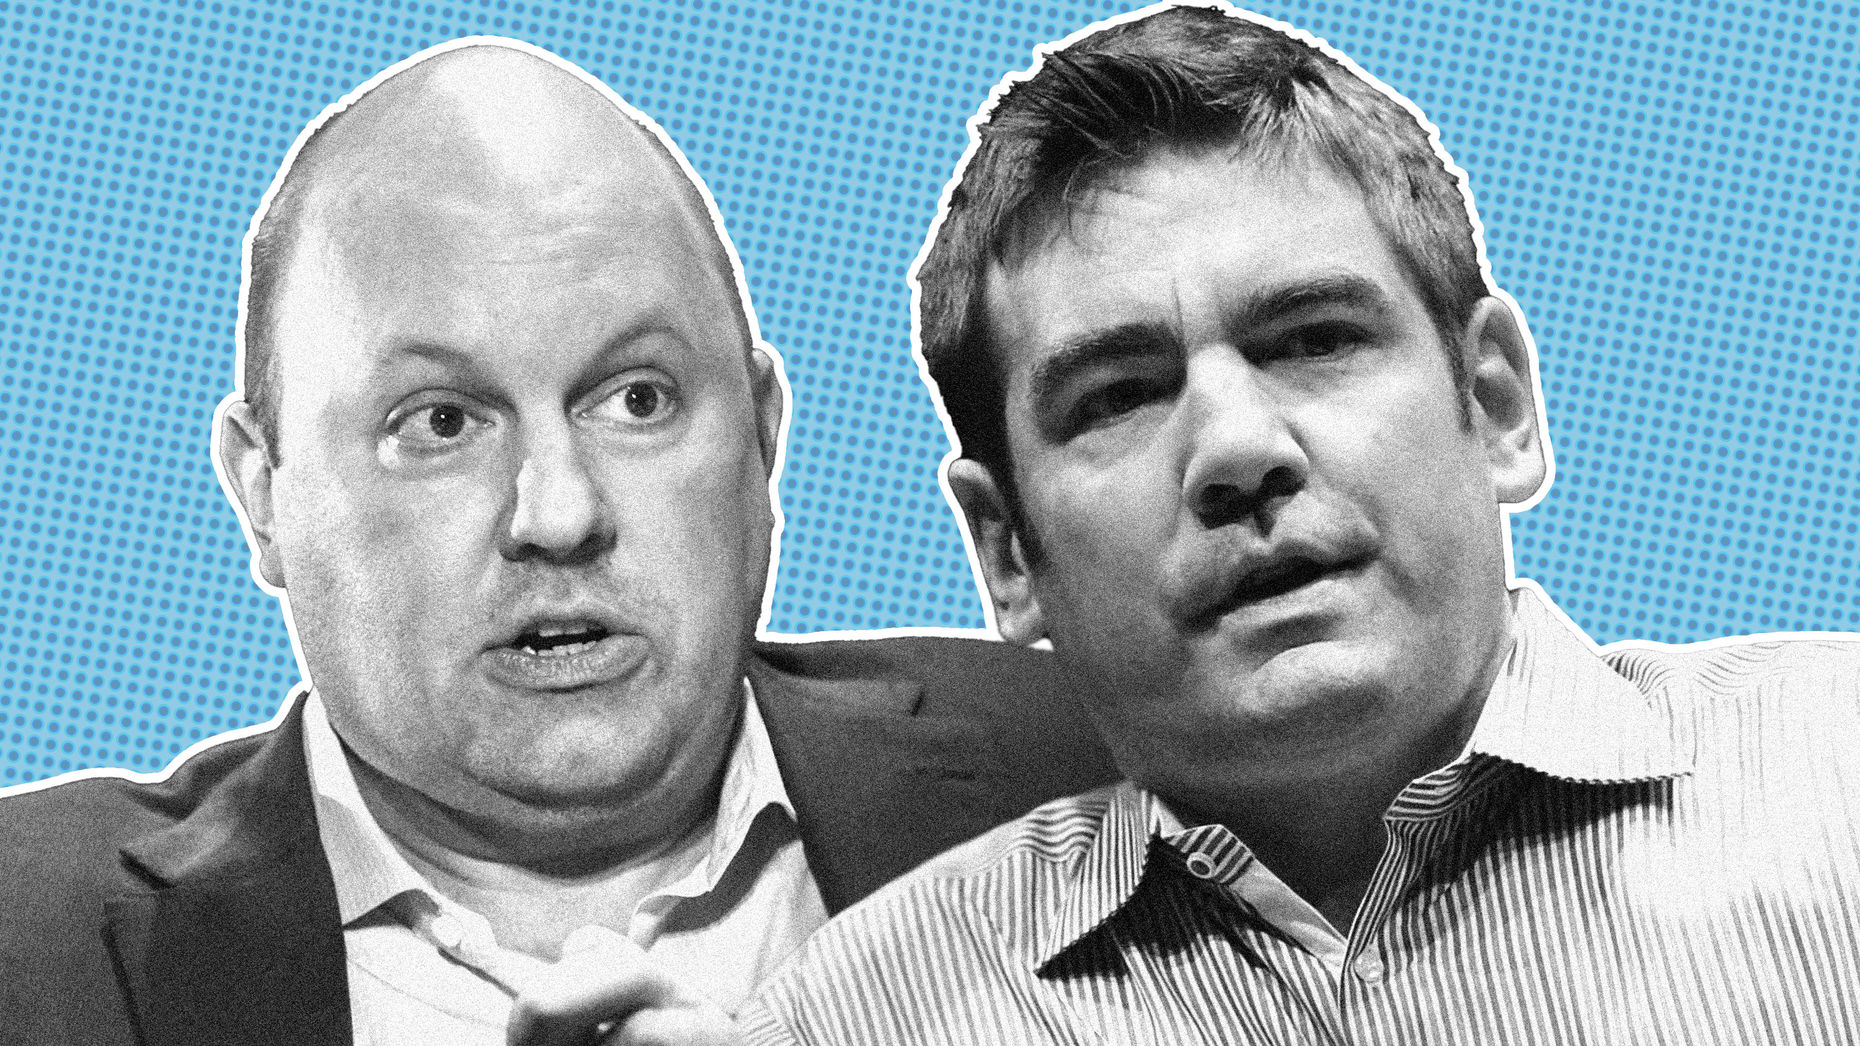 Marc Andreessen, left, and Chris Dixon. Photos by Bloomberg.